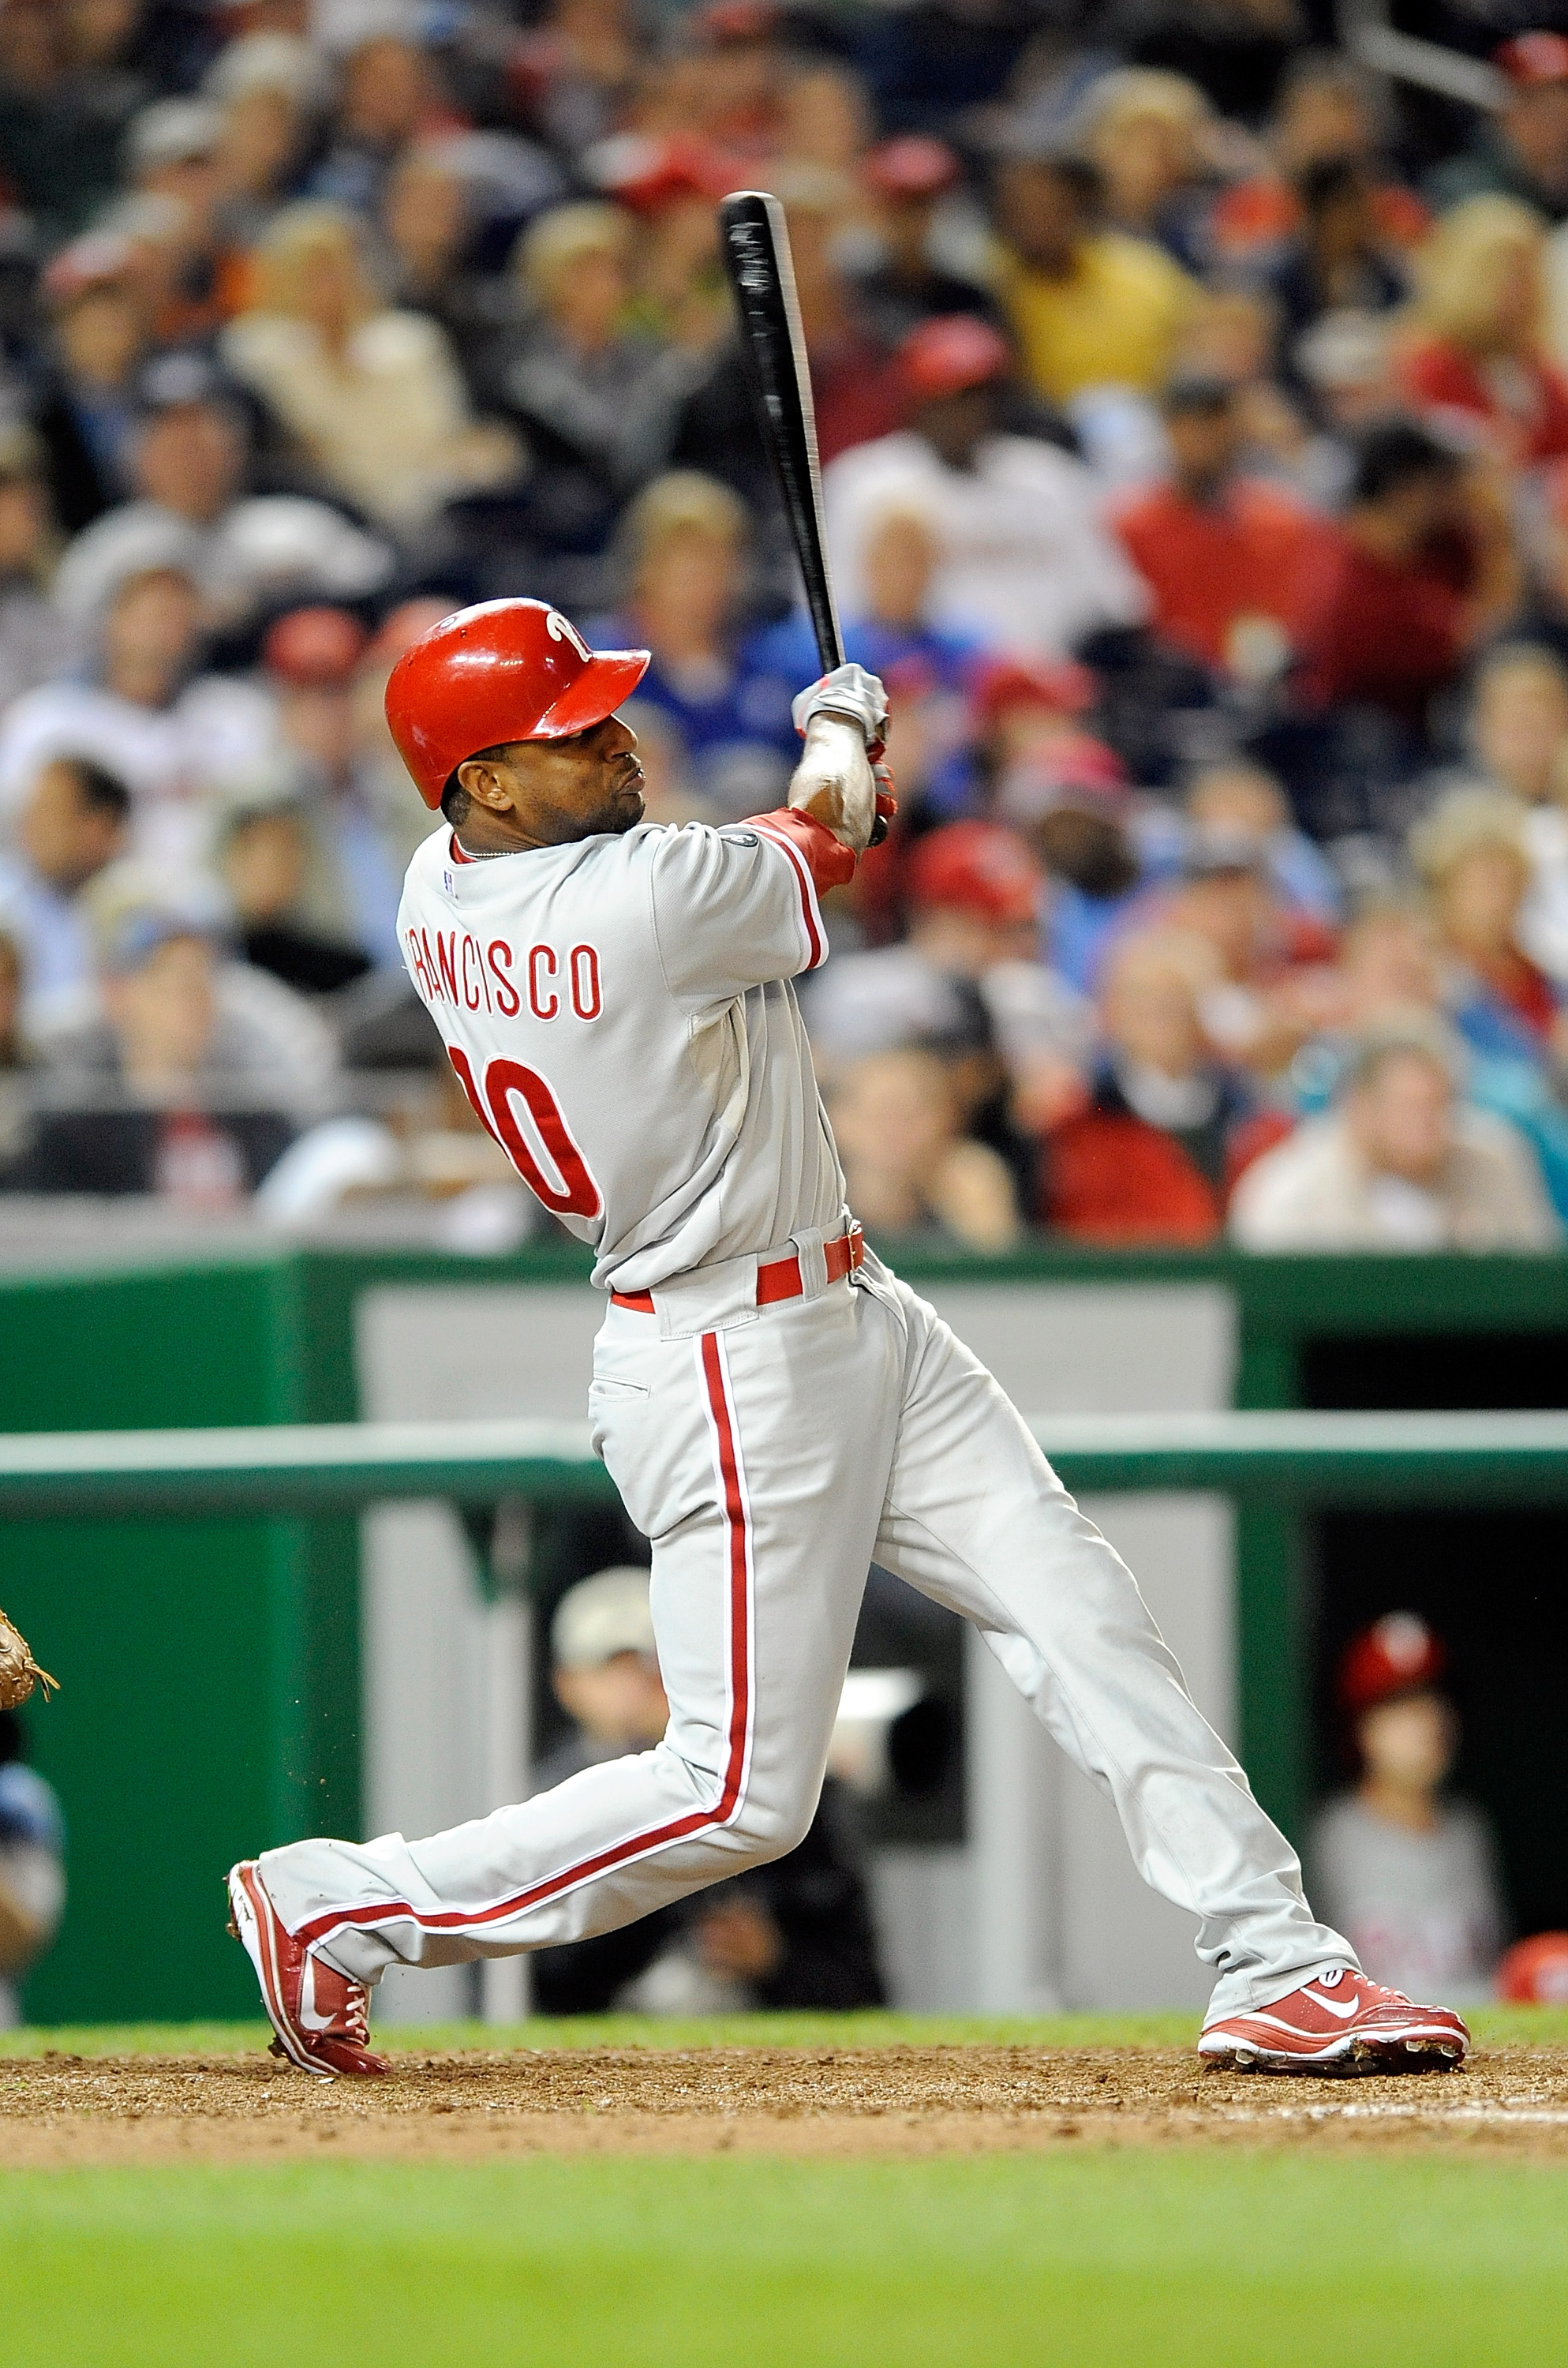 WASHINGTON - SEPTEMBER 29:  Ben Francisco #10 of the Philadelphia Phillies hits a home run in the fifth inning against the Washington Nationals at Nationals Park on September 29, 2010 in Washington, DC.  (Photo by Greg Fiume/Getty Images)